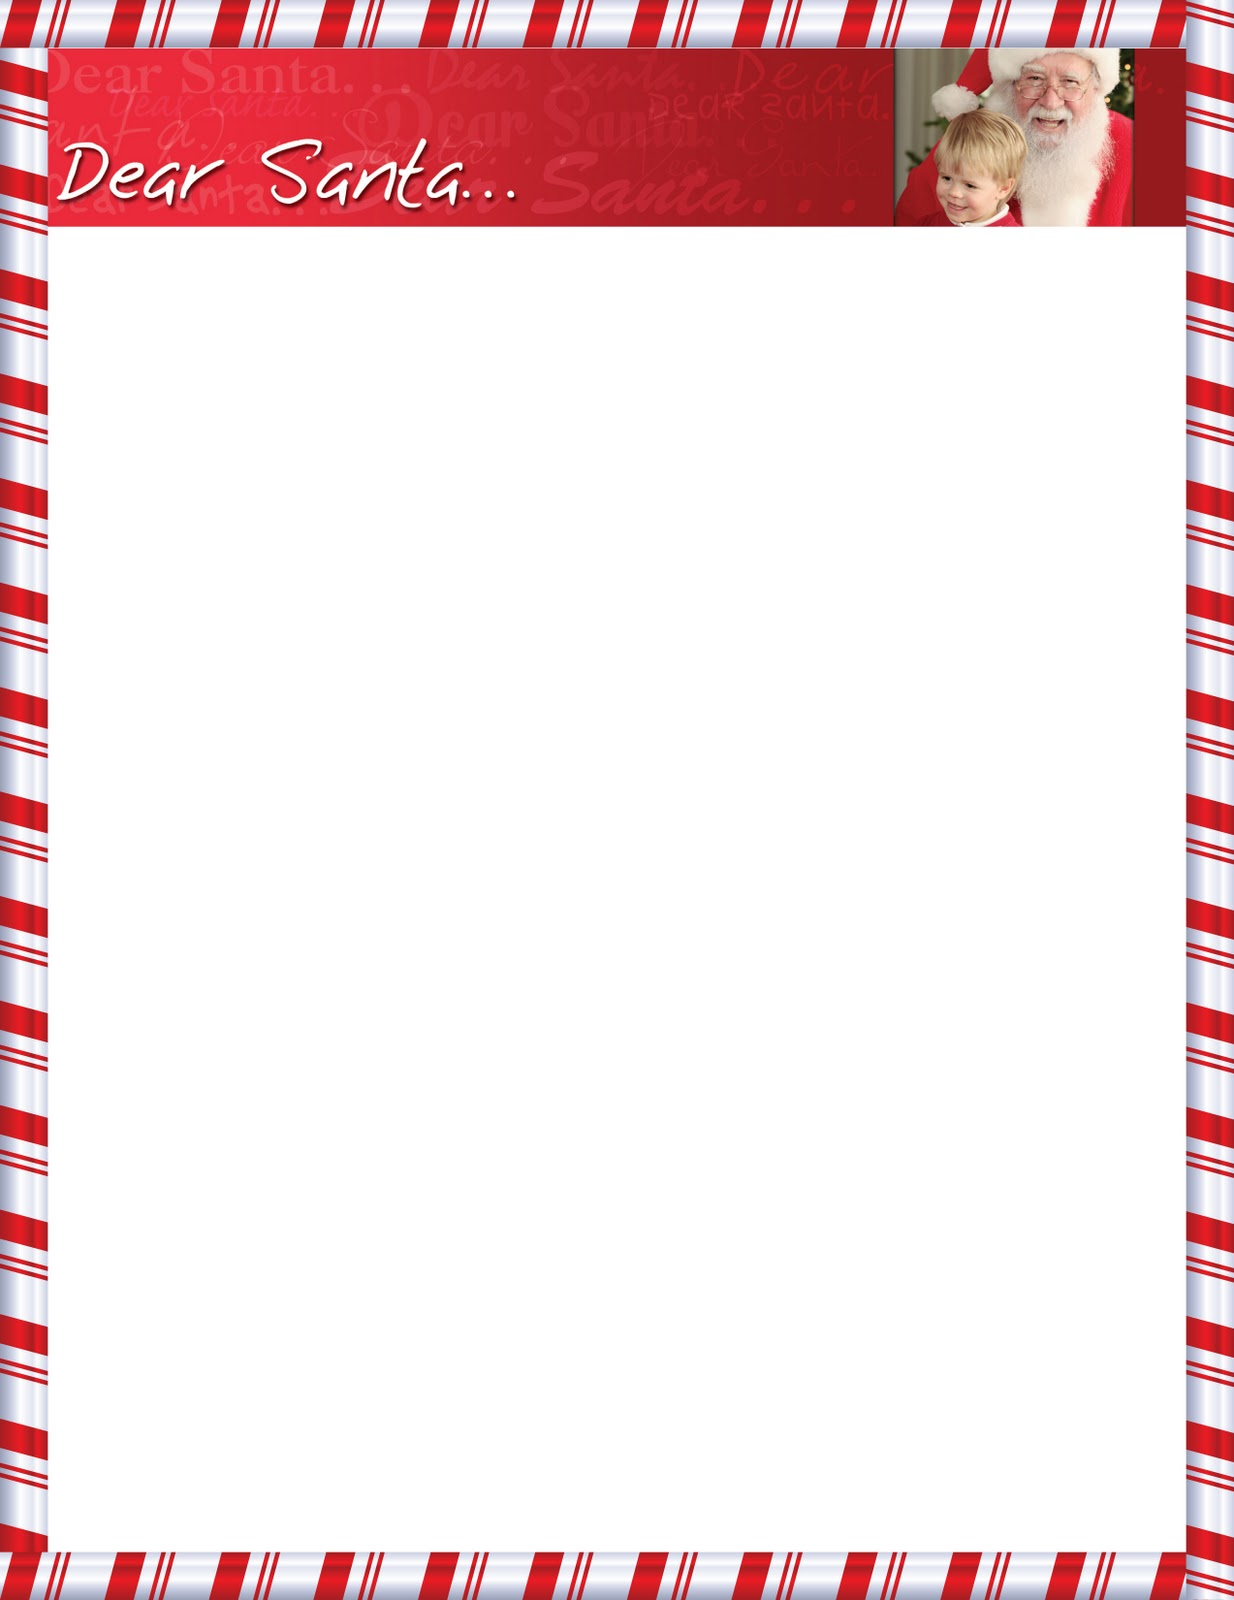 Santa Borders For Letters | Search Results | Calendar 2015